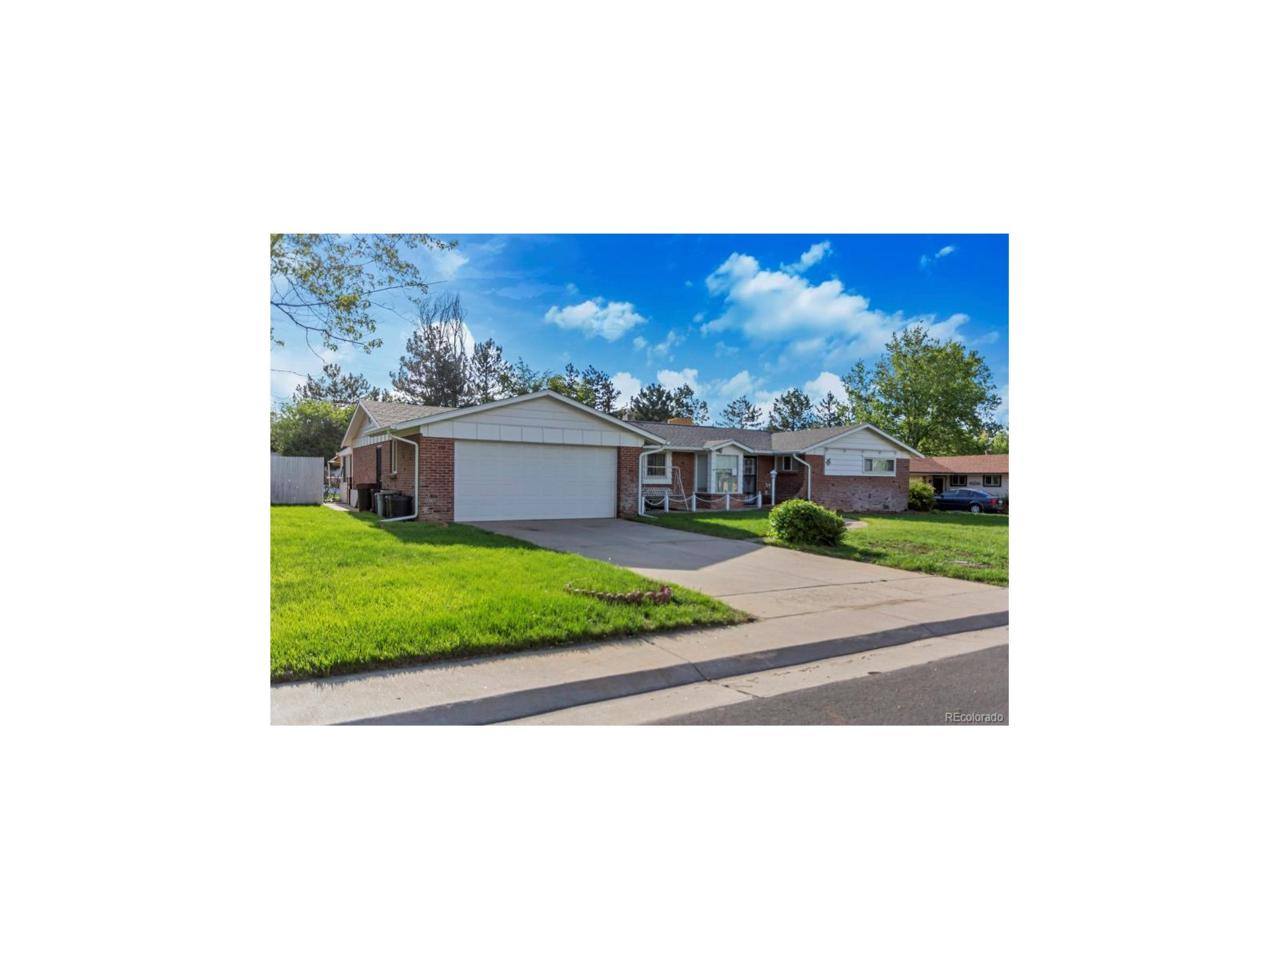 3605 Allison Court, Wheat Ridge, CO 80033 (MLS #7971045) :: 8z Real Estate